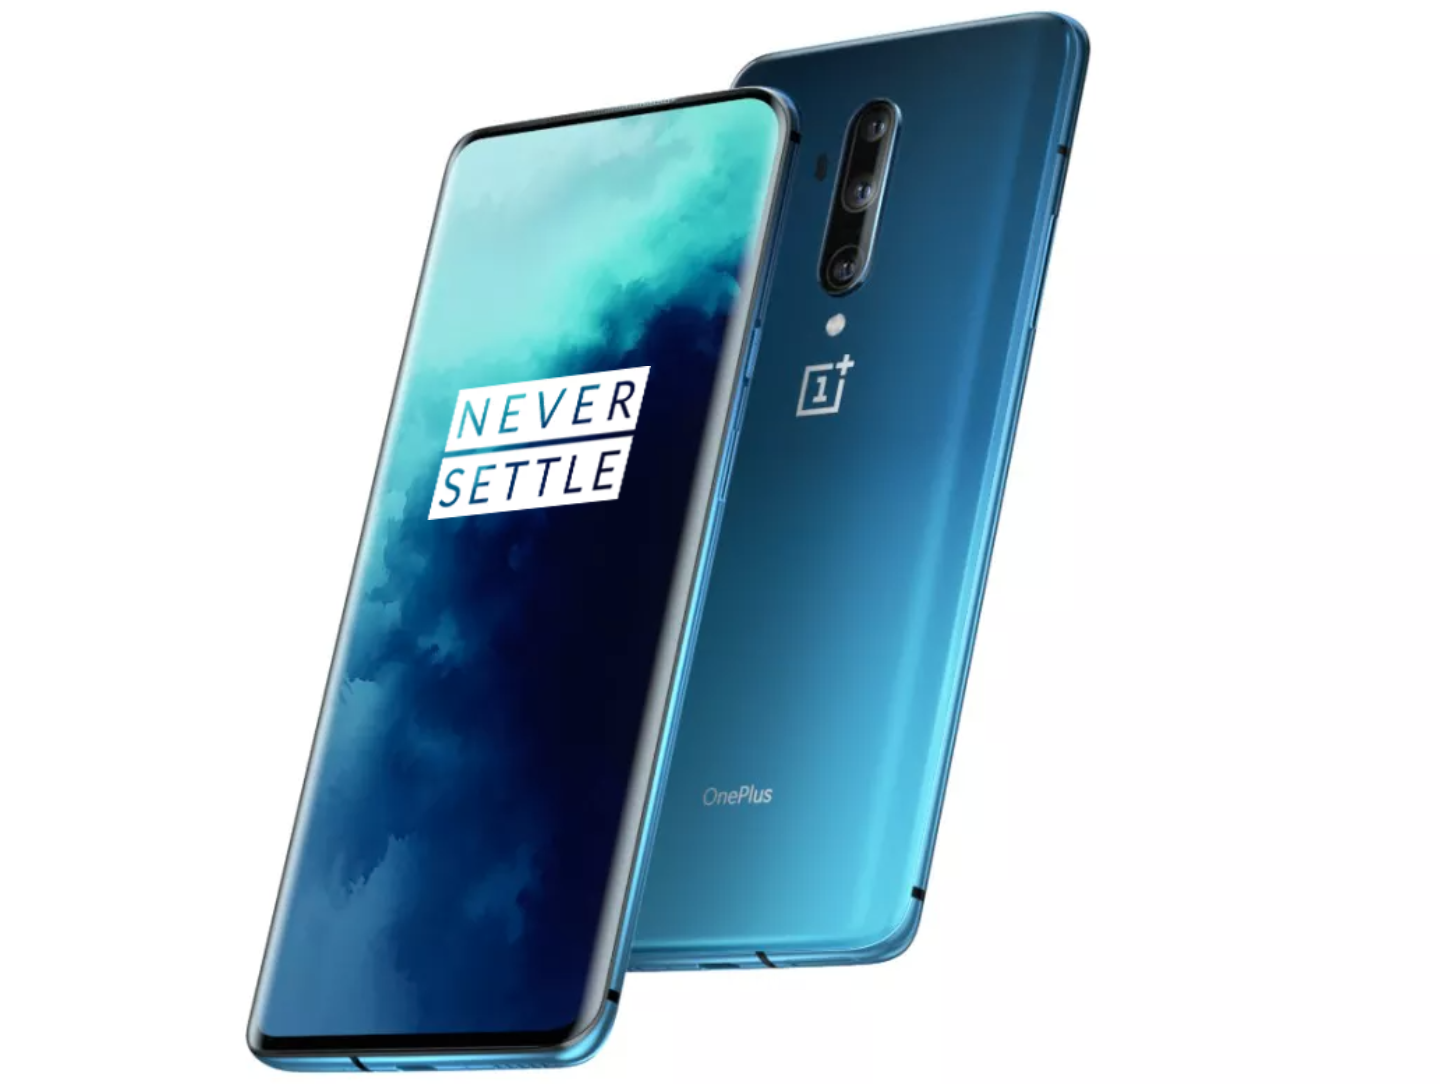 OnePlus 7T Oxygen OS gets beta update with camera improvements-cnTechPost